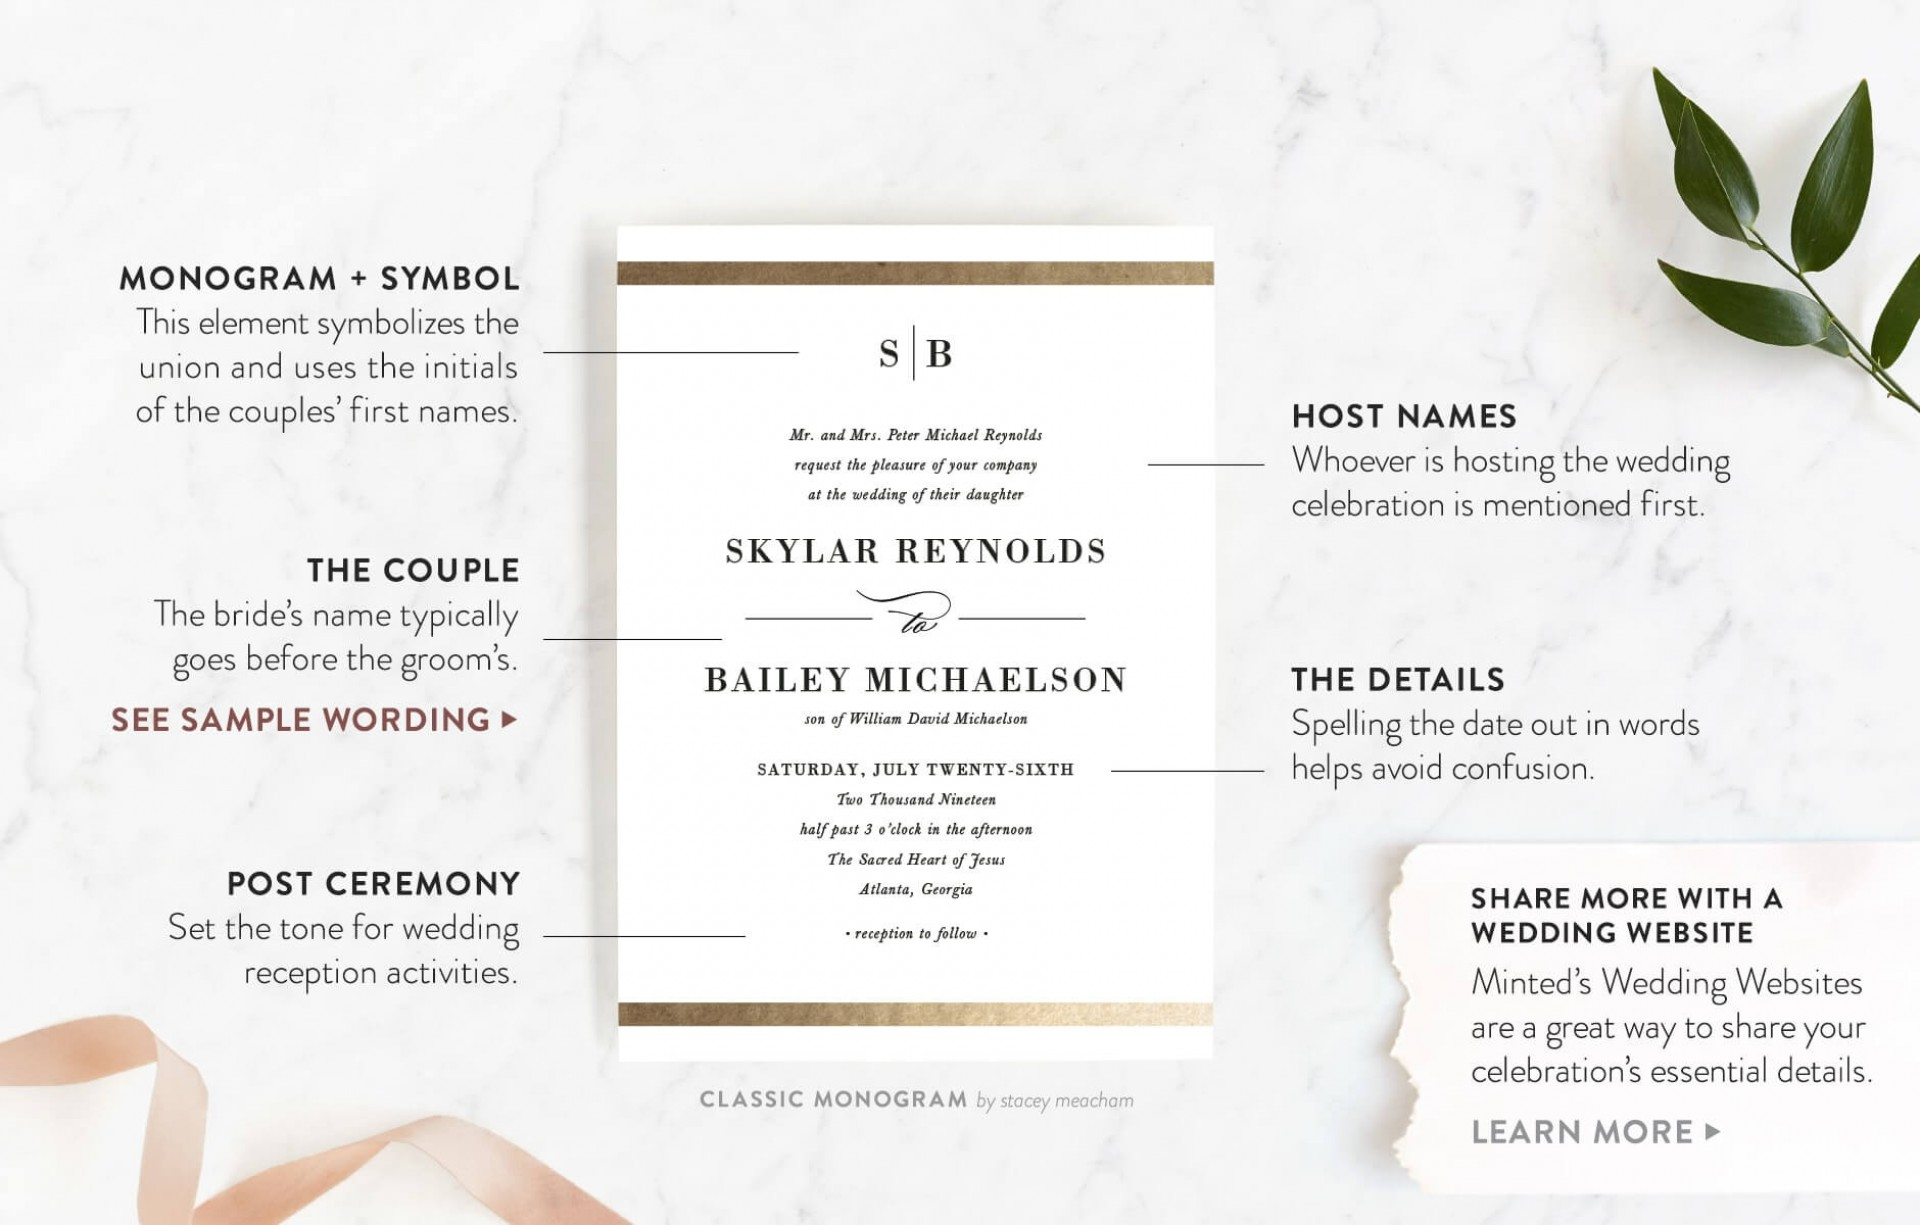 001 Shocking Wedding Invite Wording Template Photo  Templates Chinese Invitation Microsoft Word From Bride And Groom Example Inviting1920